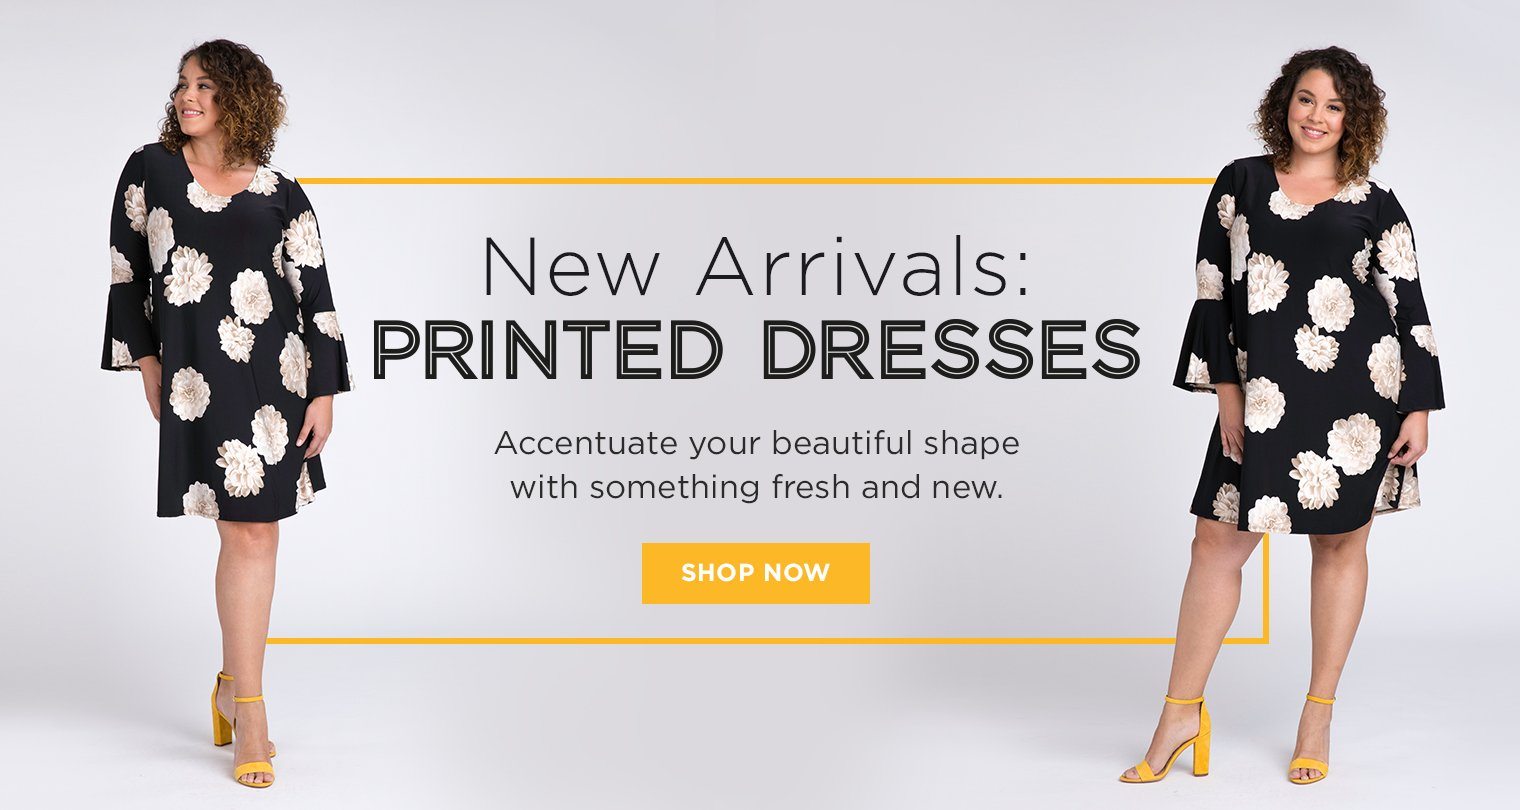 New Arrivals: Printed Dresses. Accentuate your beautiful shape with something fresh and new. Shop now.